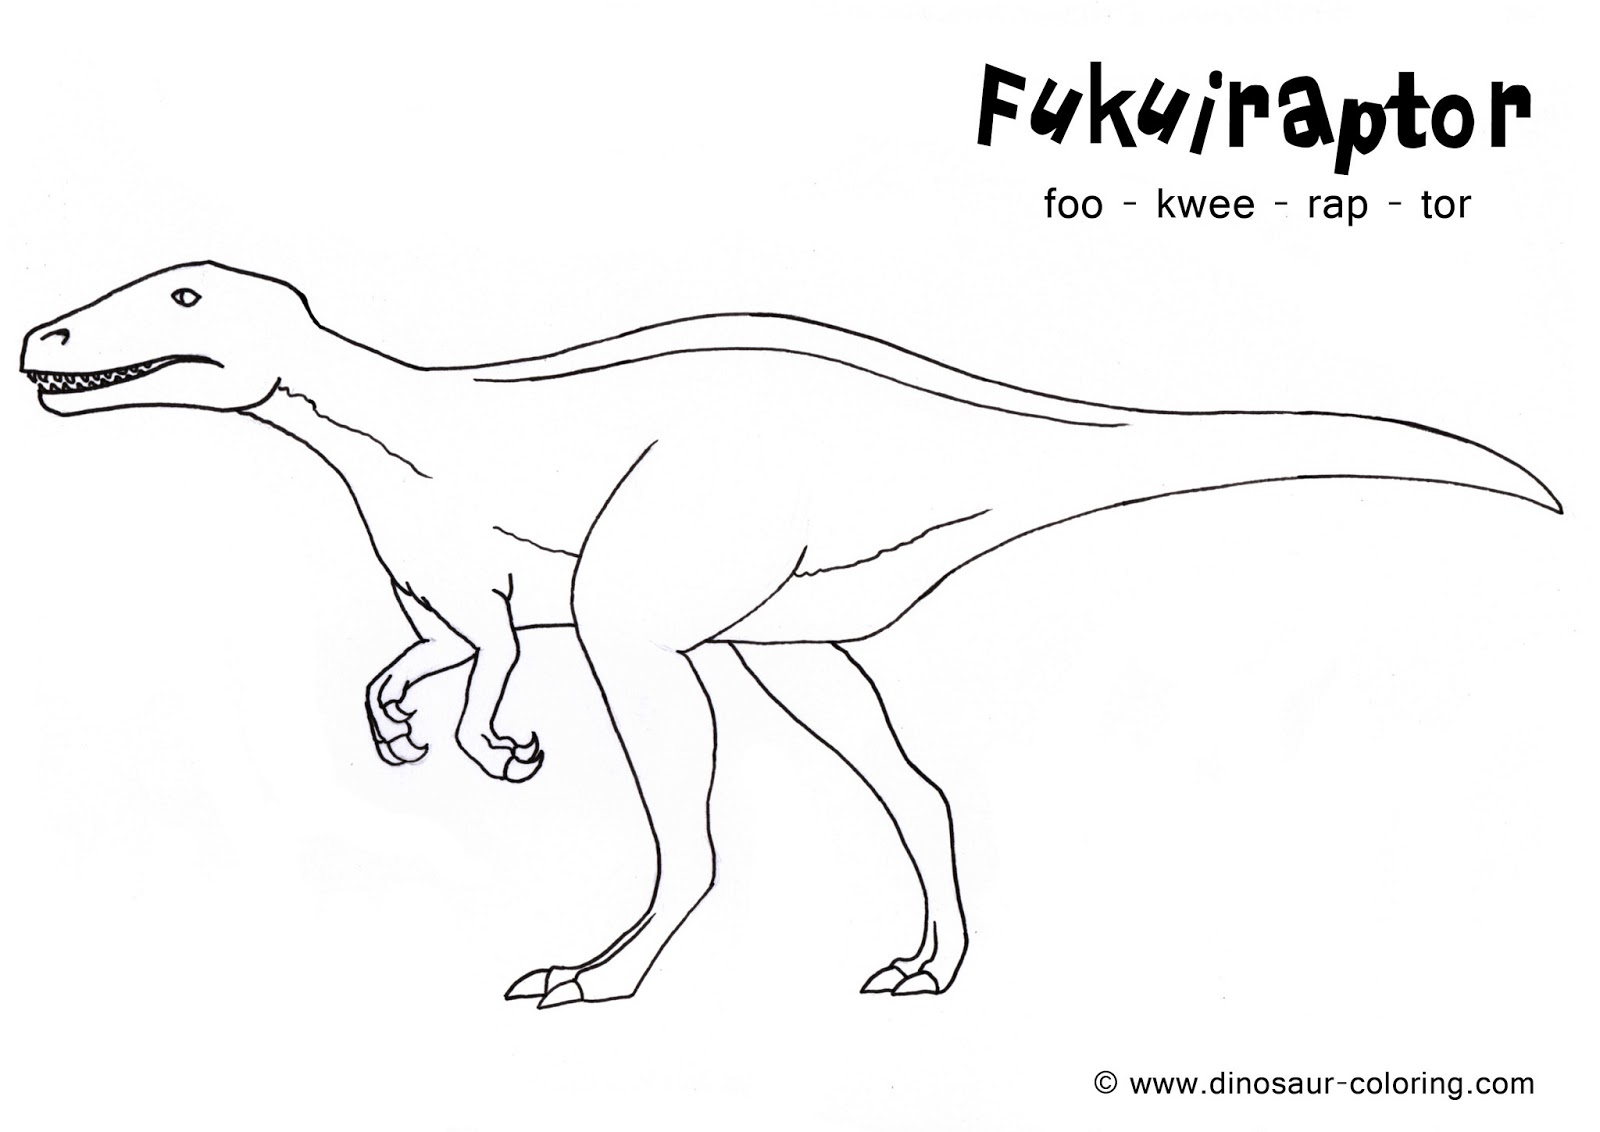 Dinosaur colouring in games - Dinosaur King Coloring Pages Games 26 May 2013